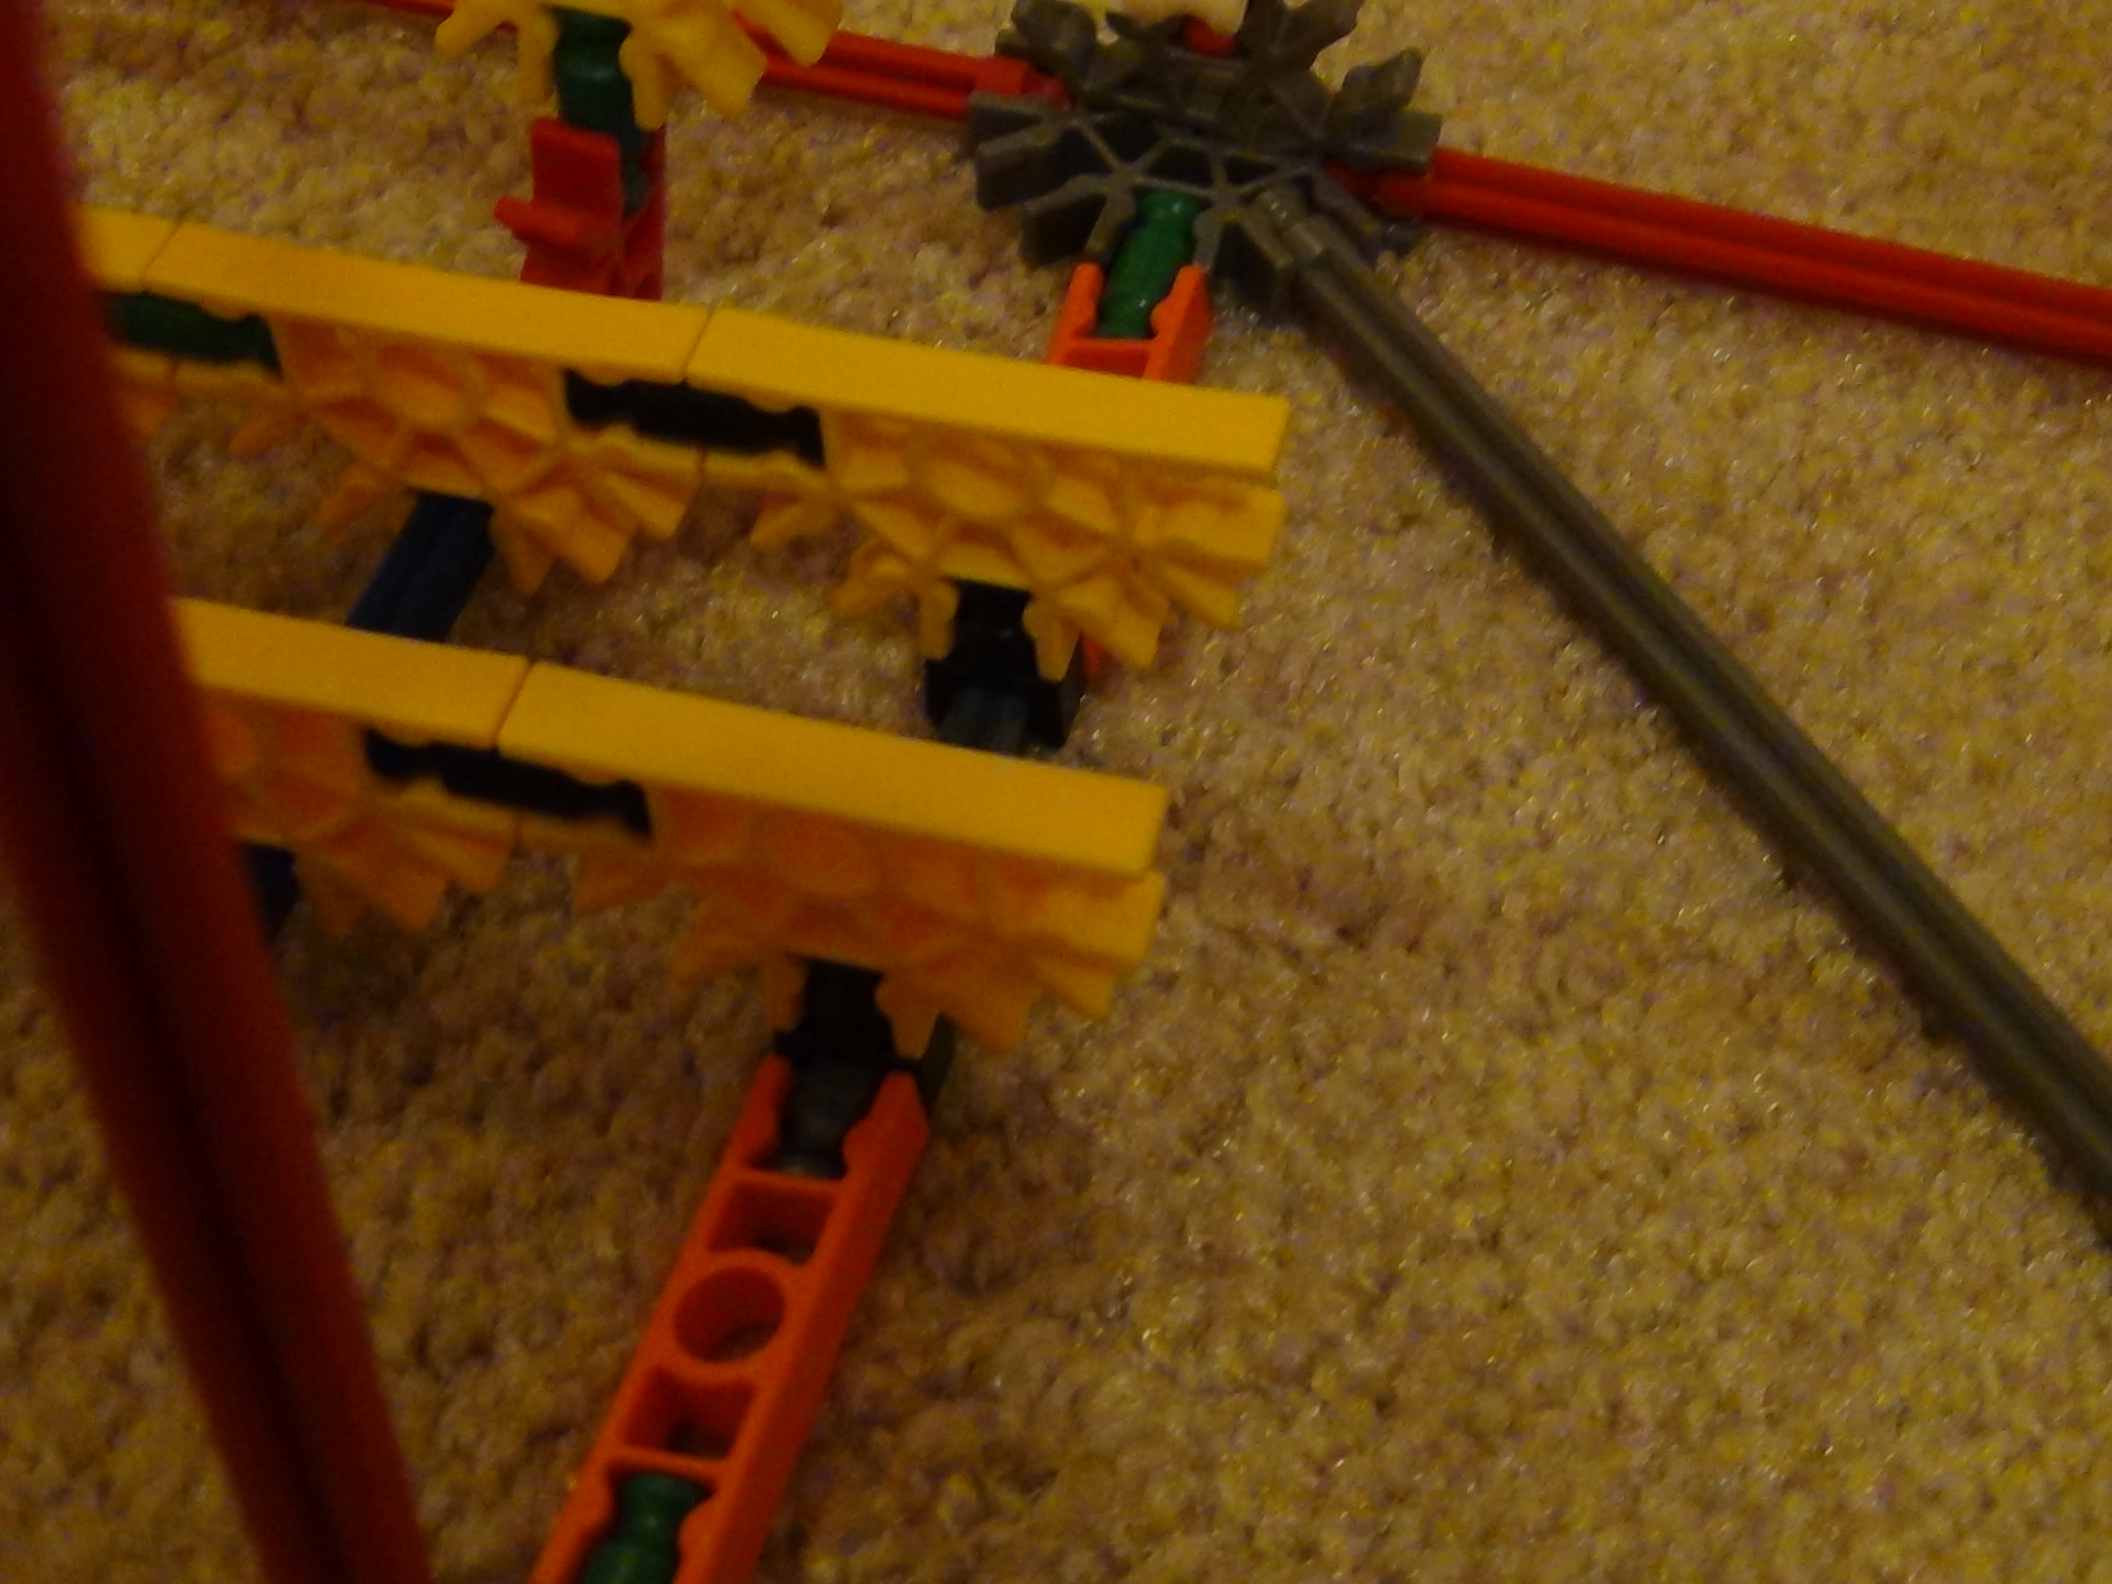 Picture of Attaching the Ark, Motor, and Arms